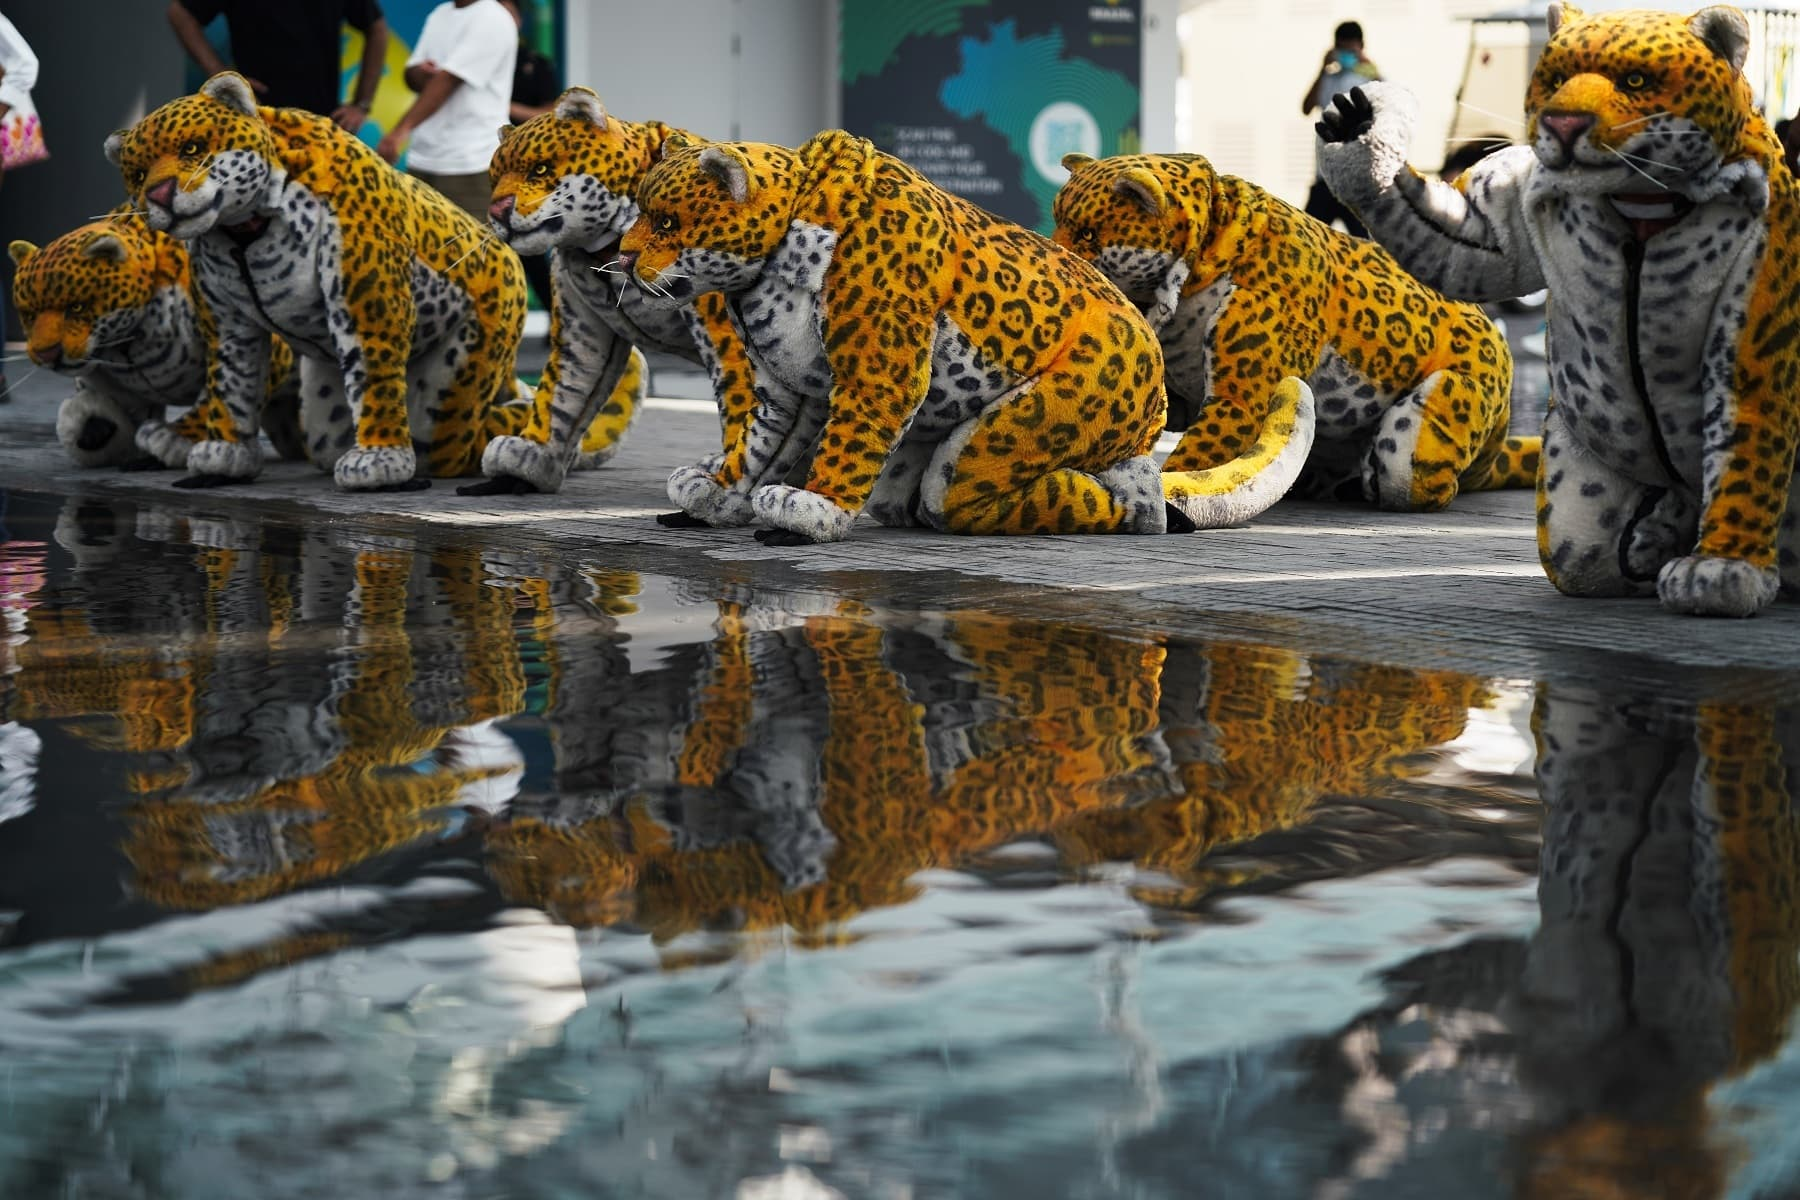 A troop of performers dressed as jaguars pose near the water at the Brazil pavilion at Expo 2020. — AP